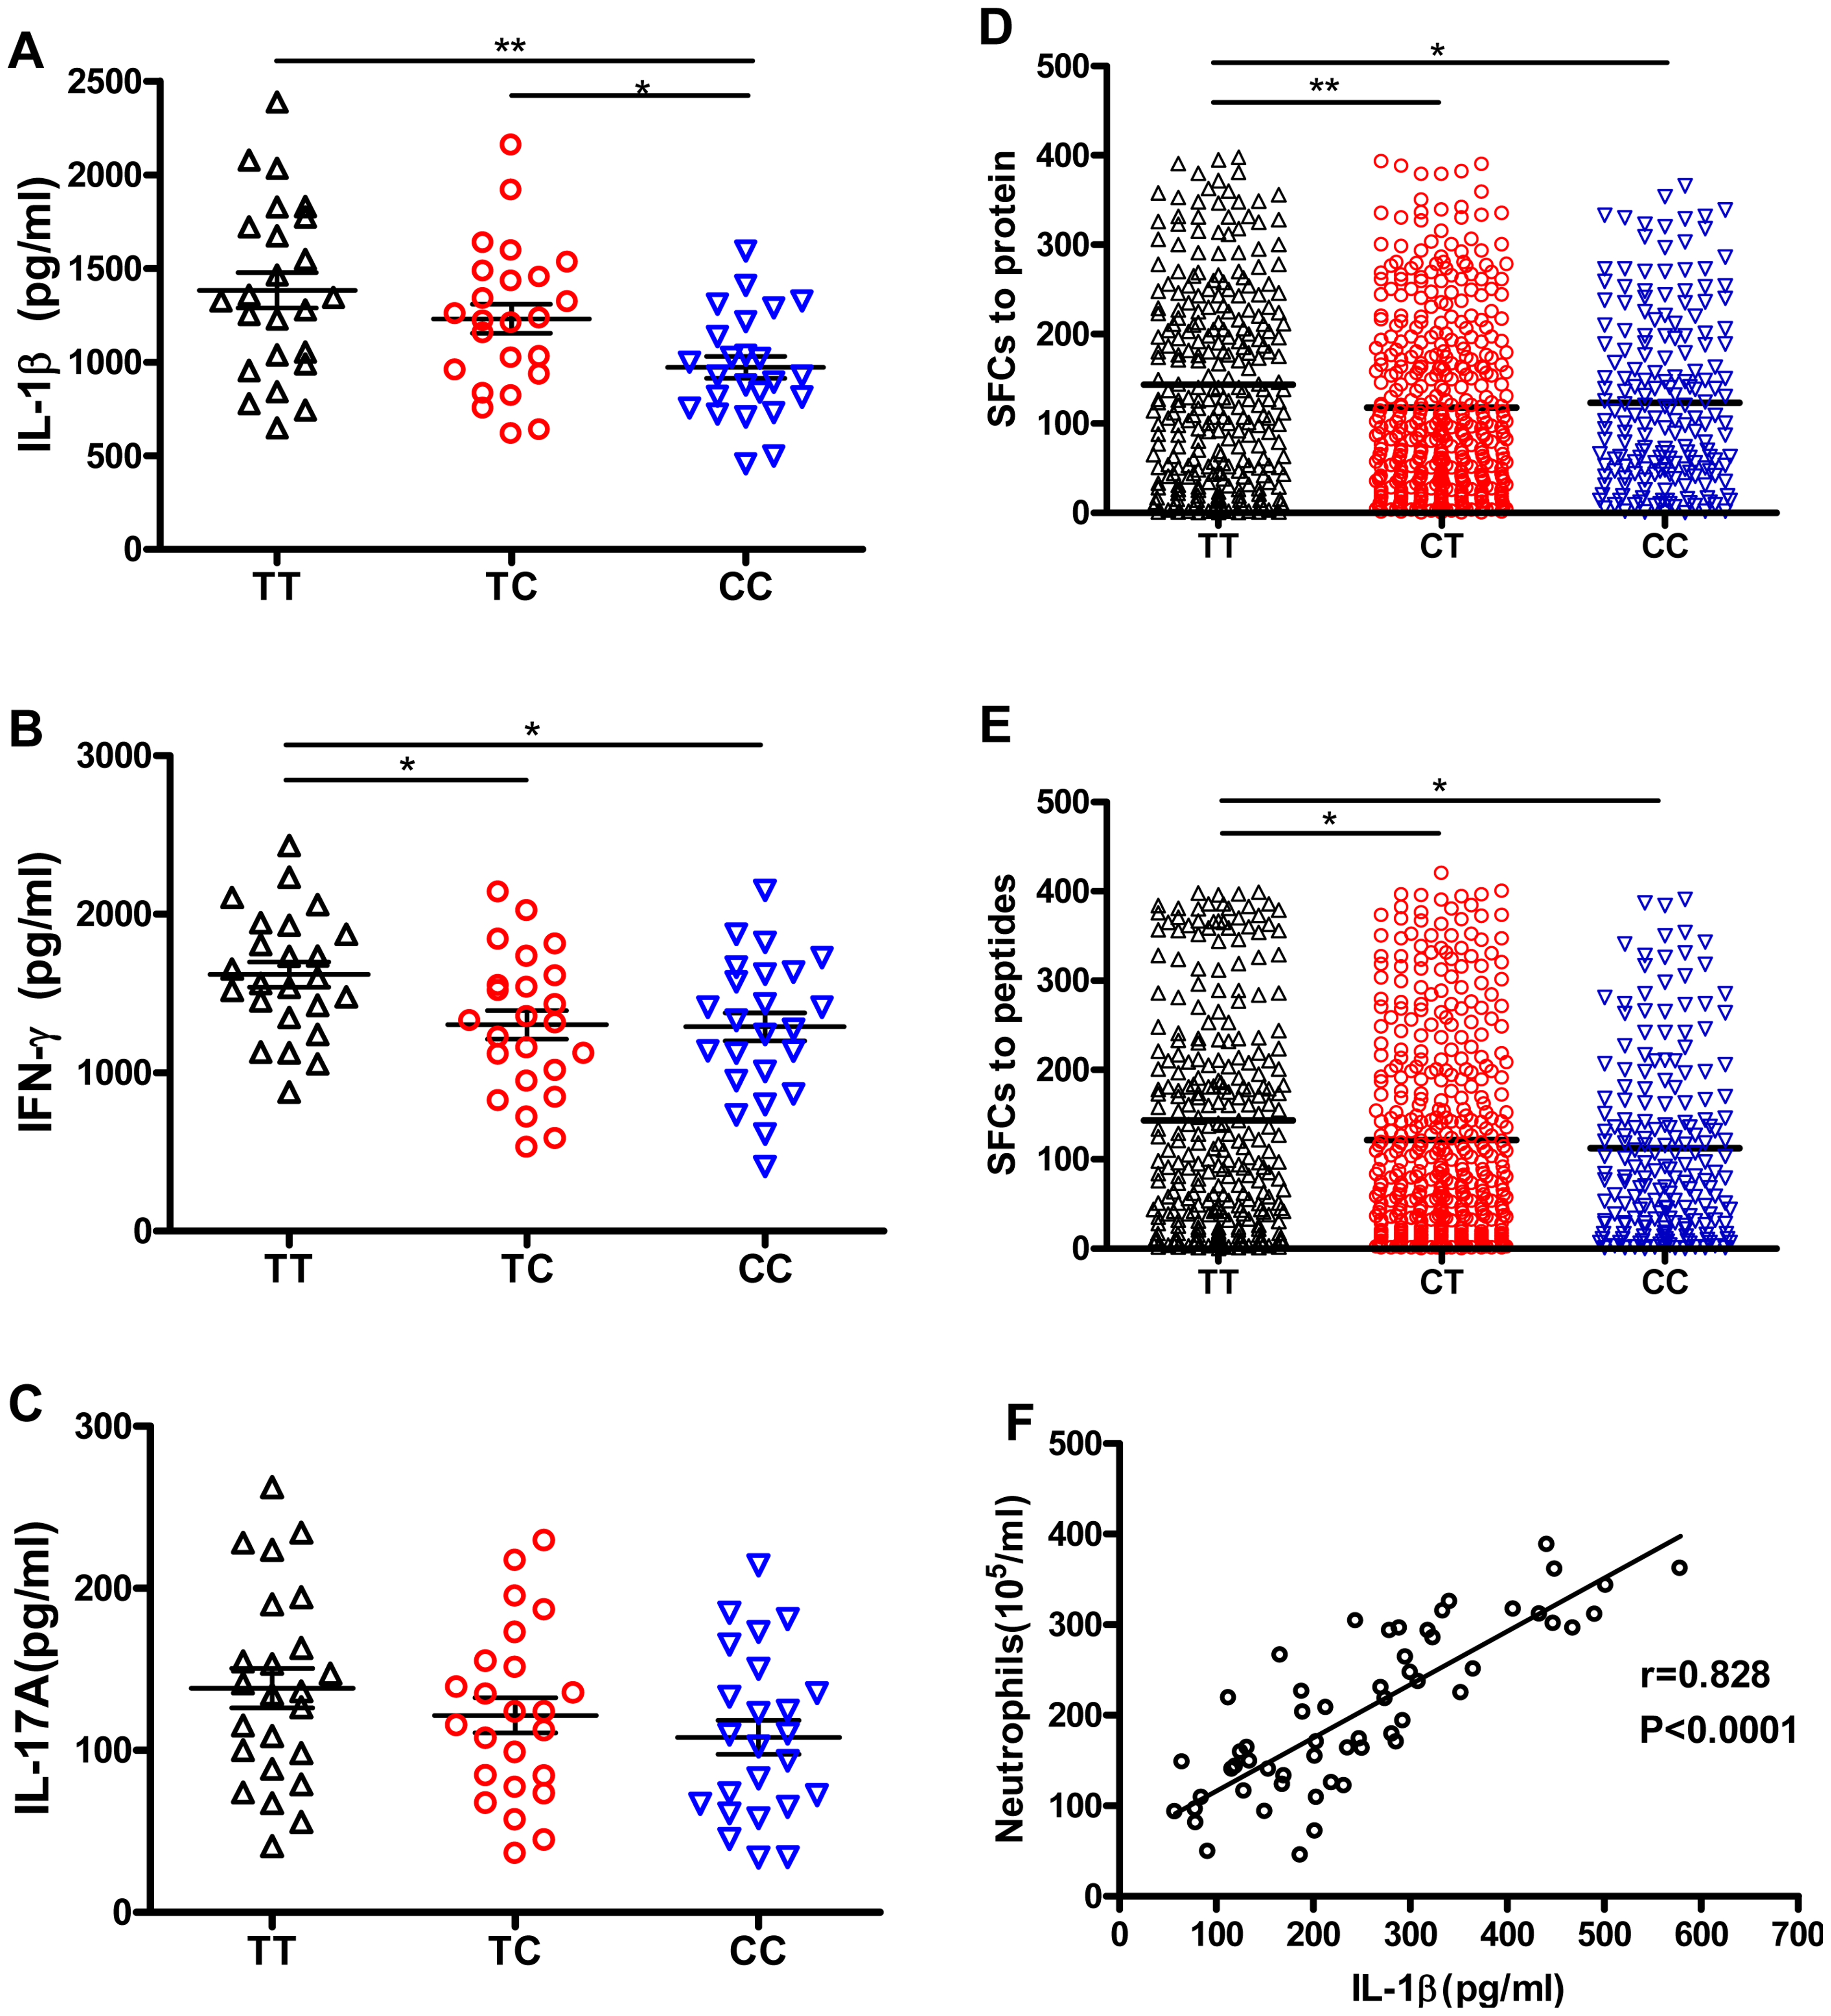 rs1143627T-induced IL-1β has little effect on Mtb-specific lymphocyte responses, but IL-1β correlates with neutrophil recruitment to the lung.